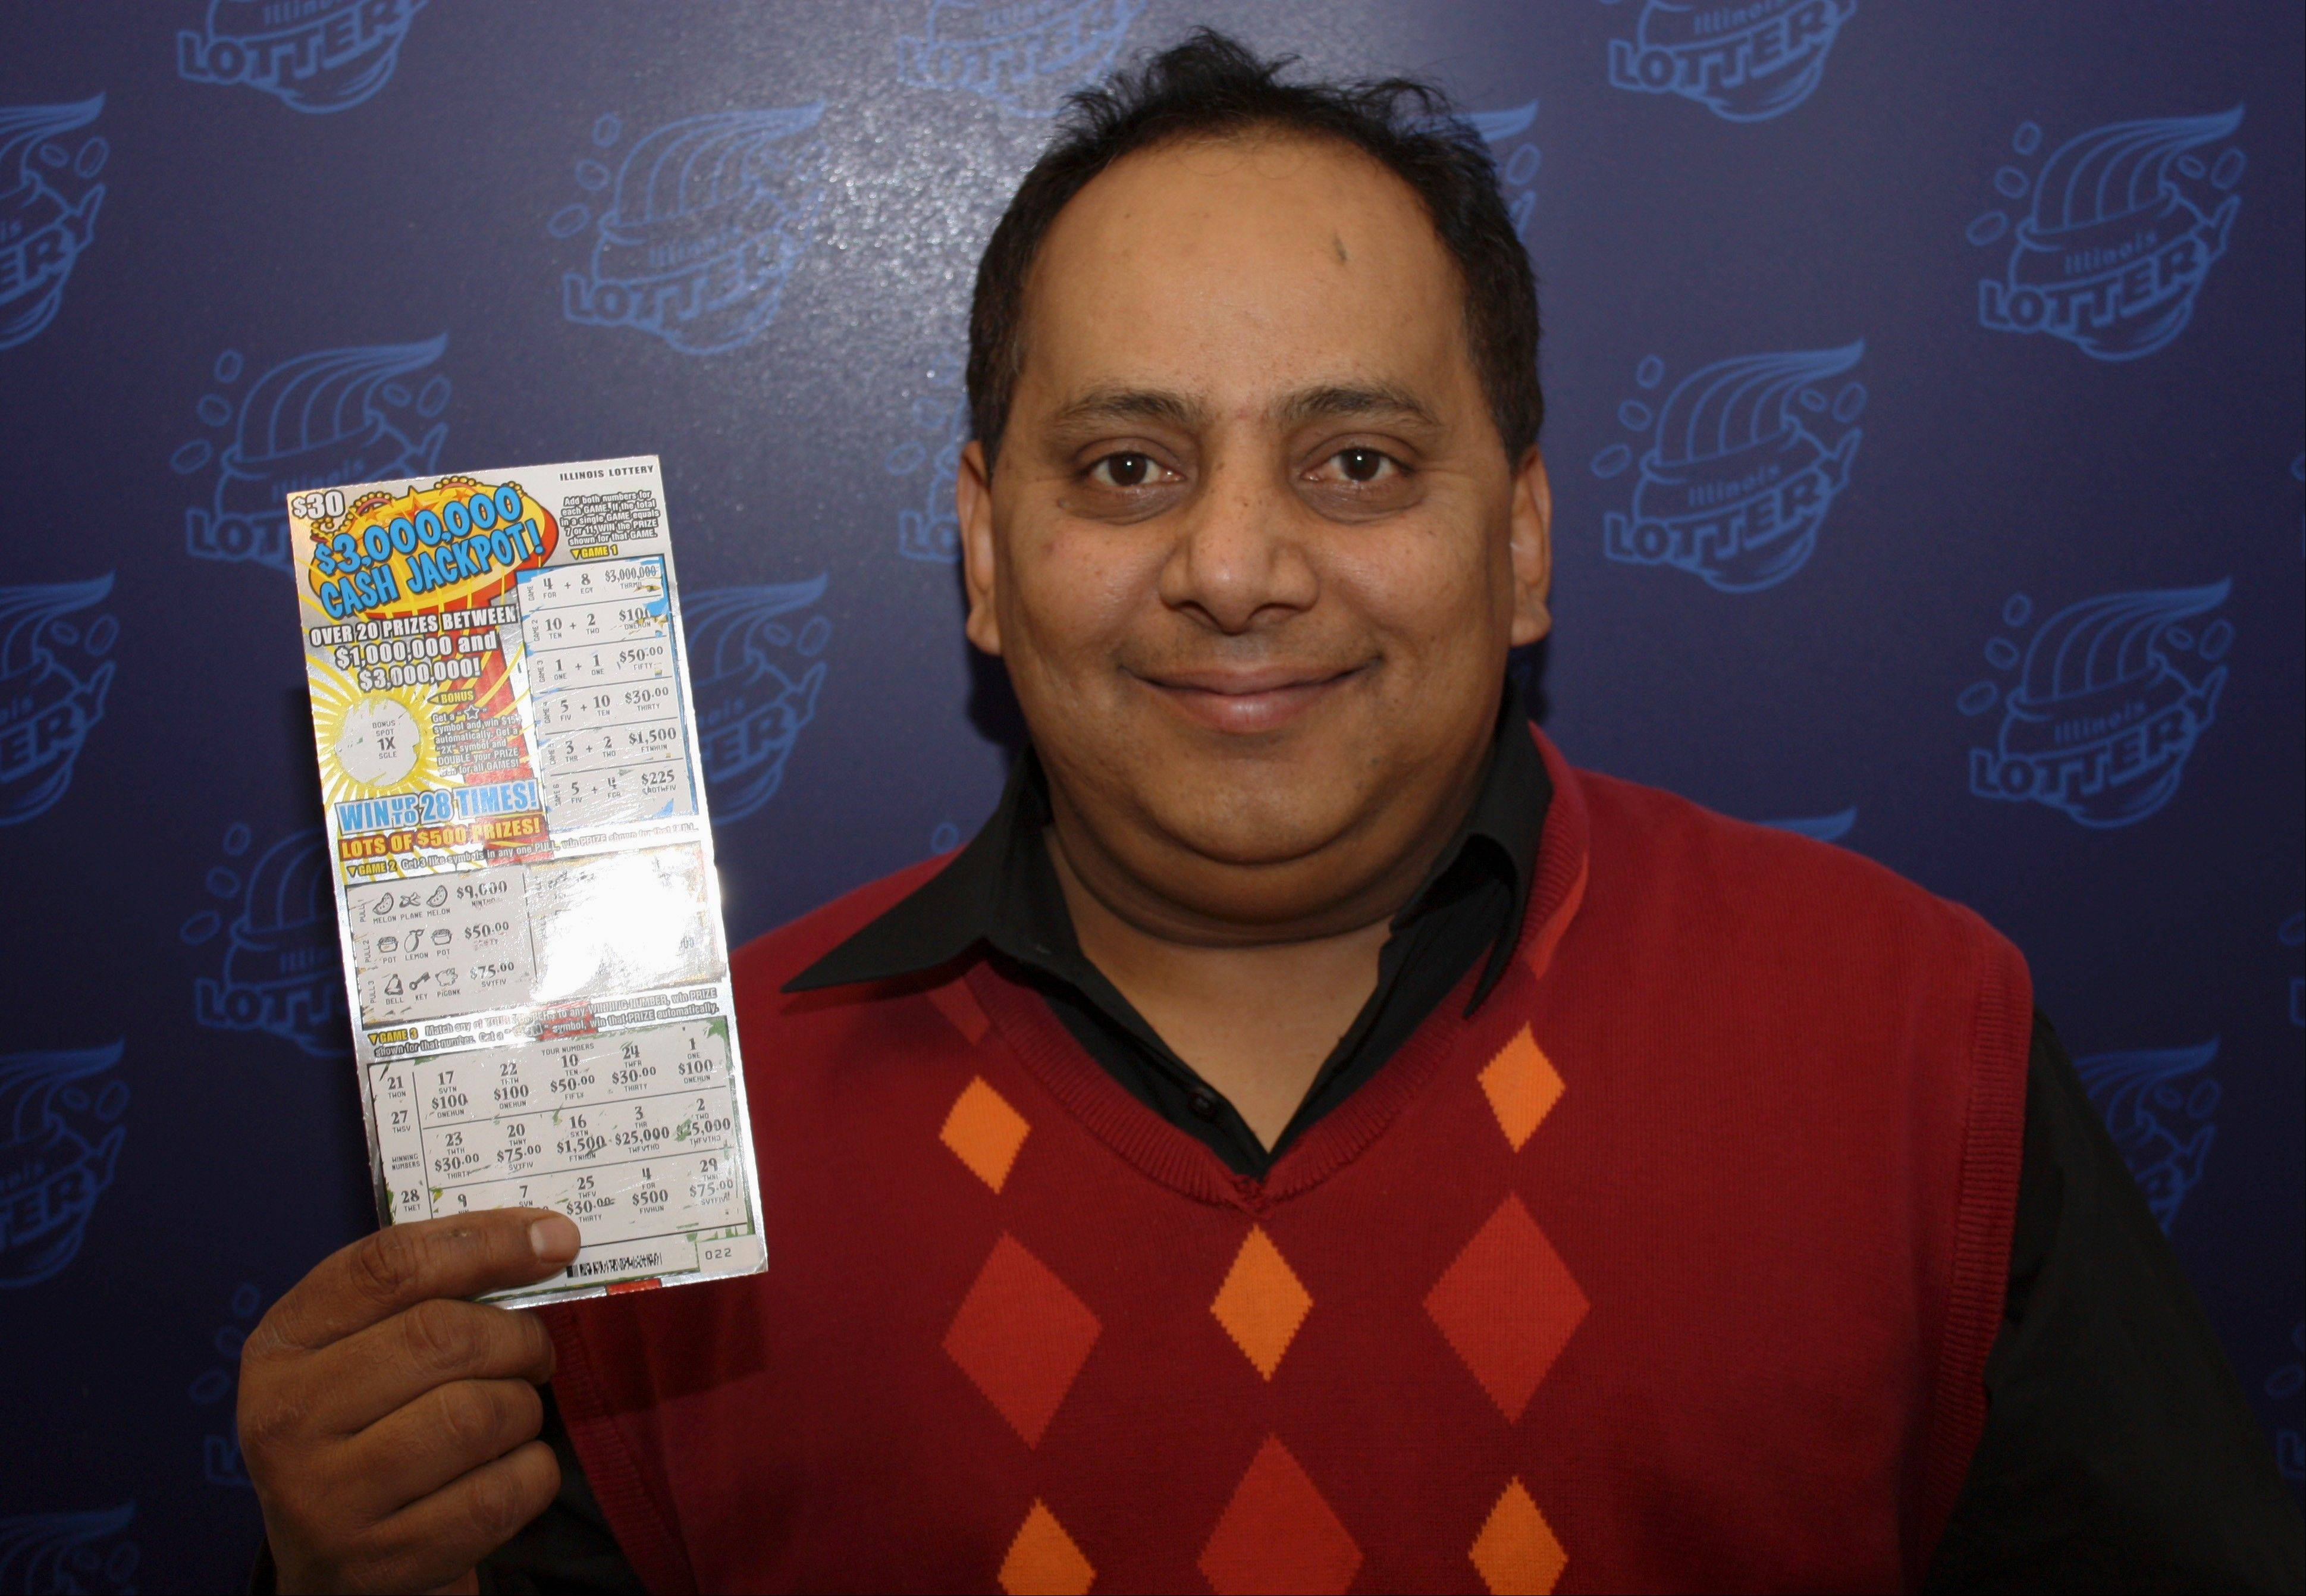 The Cook County medical examiner said Monday that lottery winner Urooj Khan, 46, of Chicago was fatally poisoned with cyanide July 20, 2012.